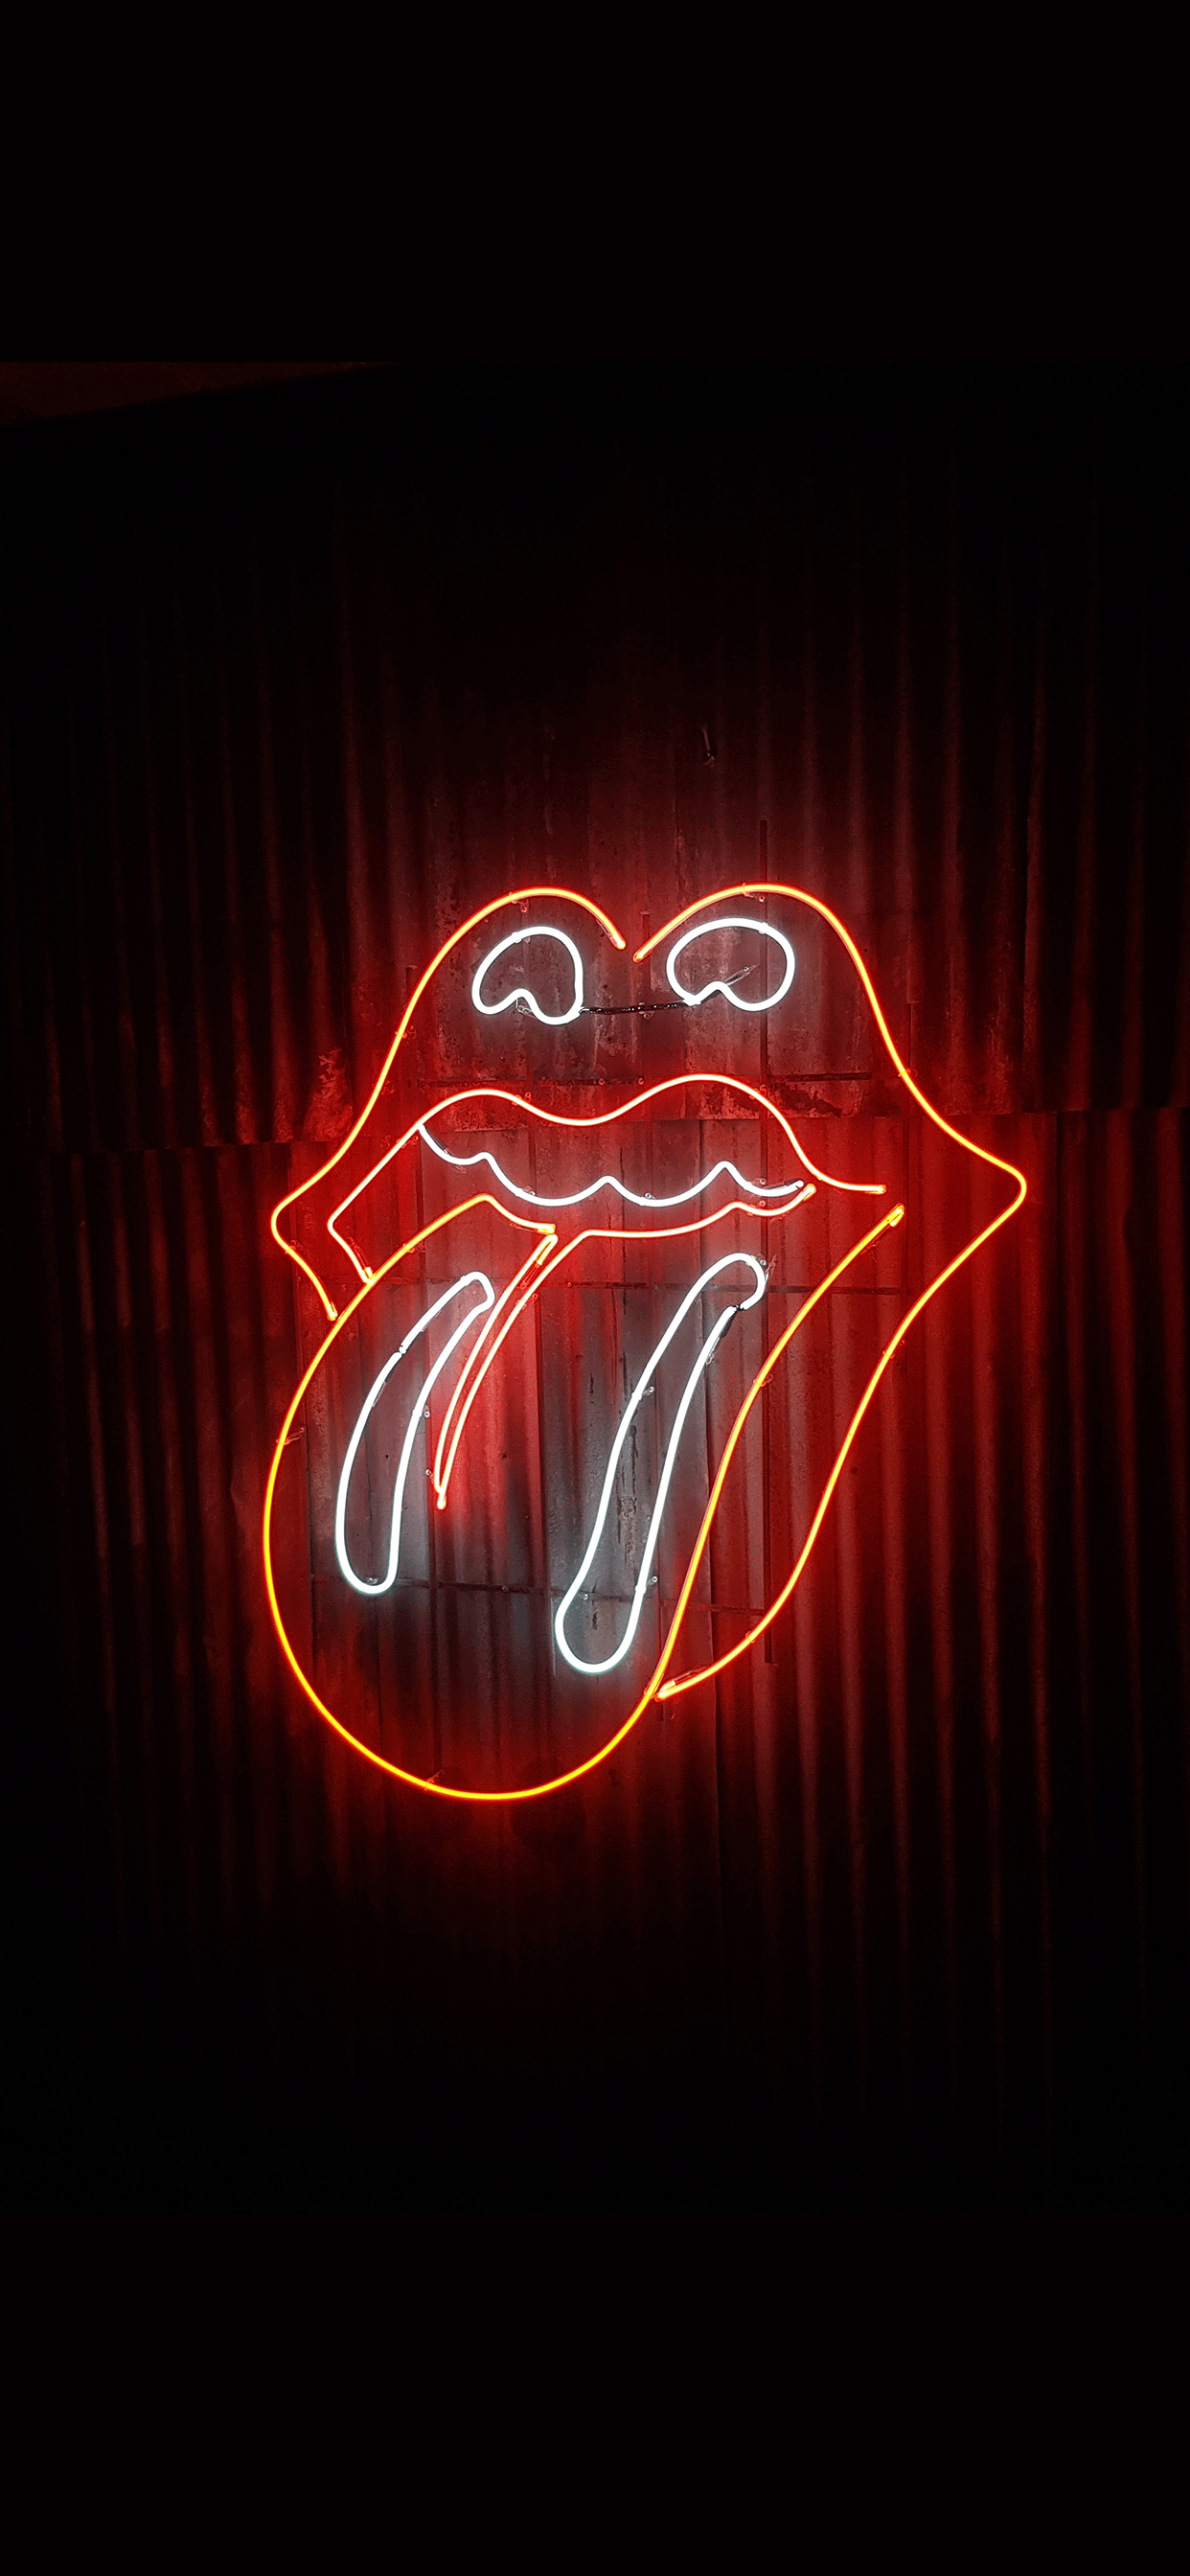 Iphone Wallpapers Neon Mouth Neon Sign   Neon Sign Wallpaper 1242x2688